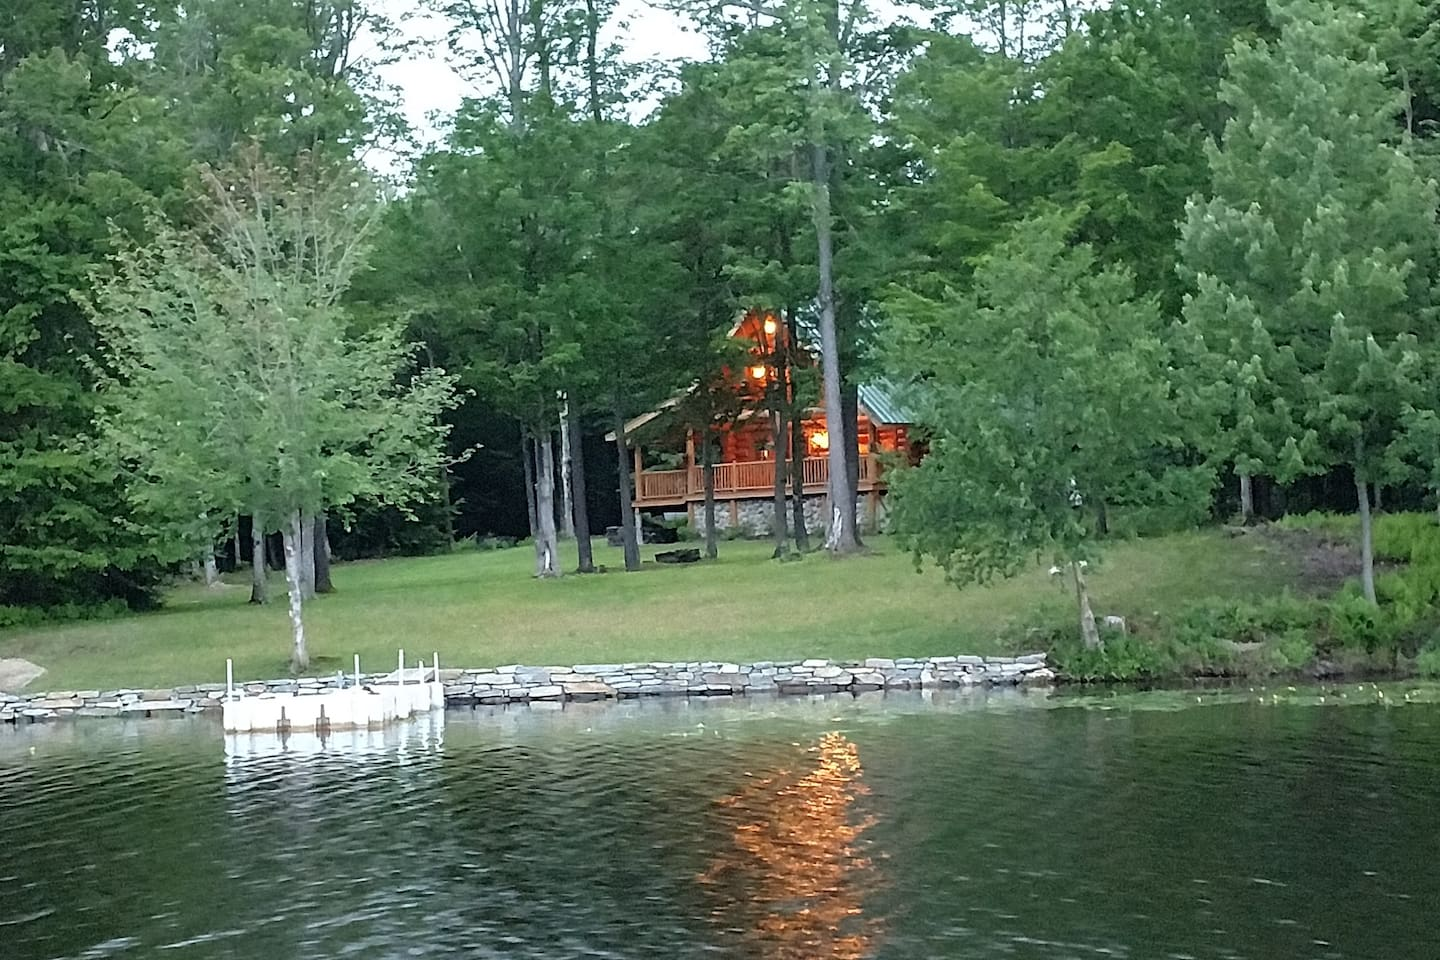 Here is our little piece of heaven, taken from the lake, feel free to bring your boat, or use our kayaks.